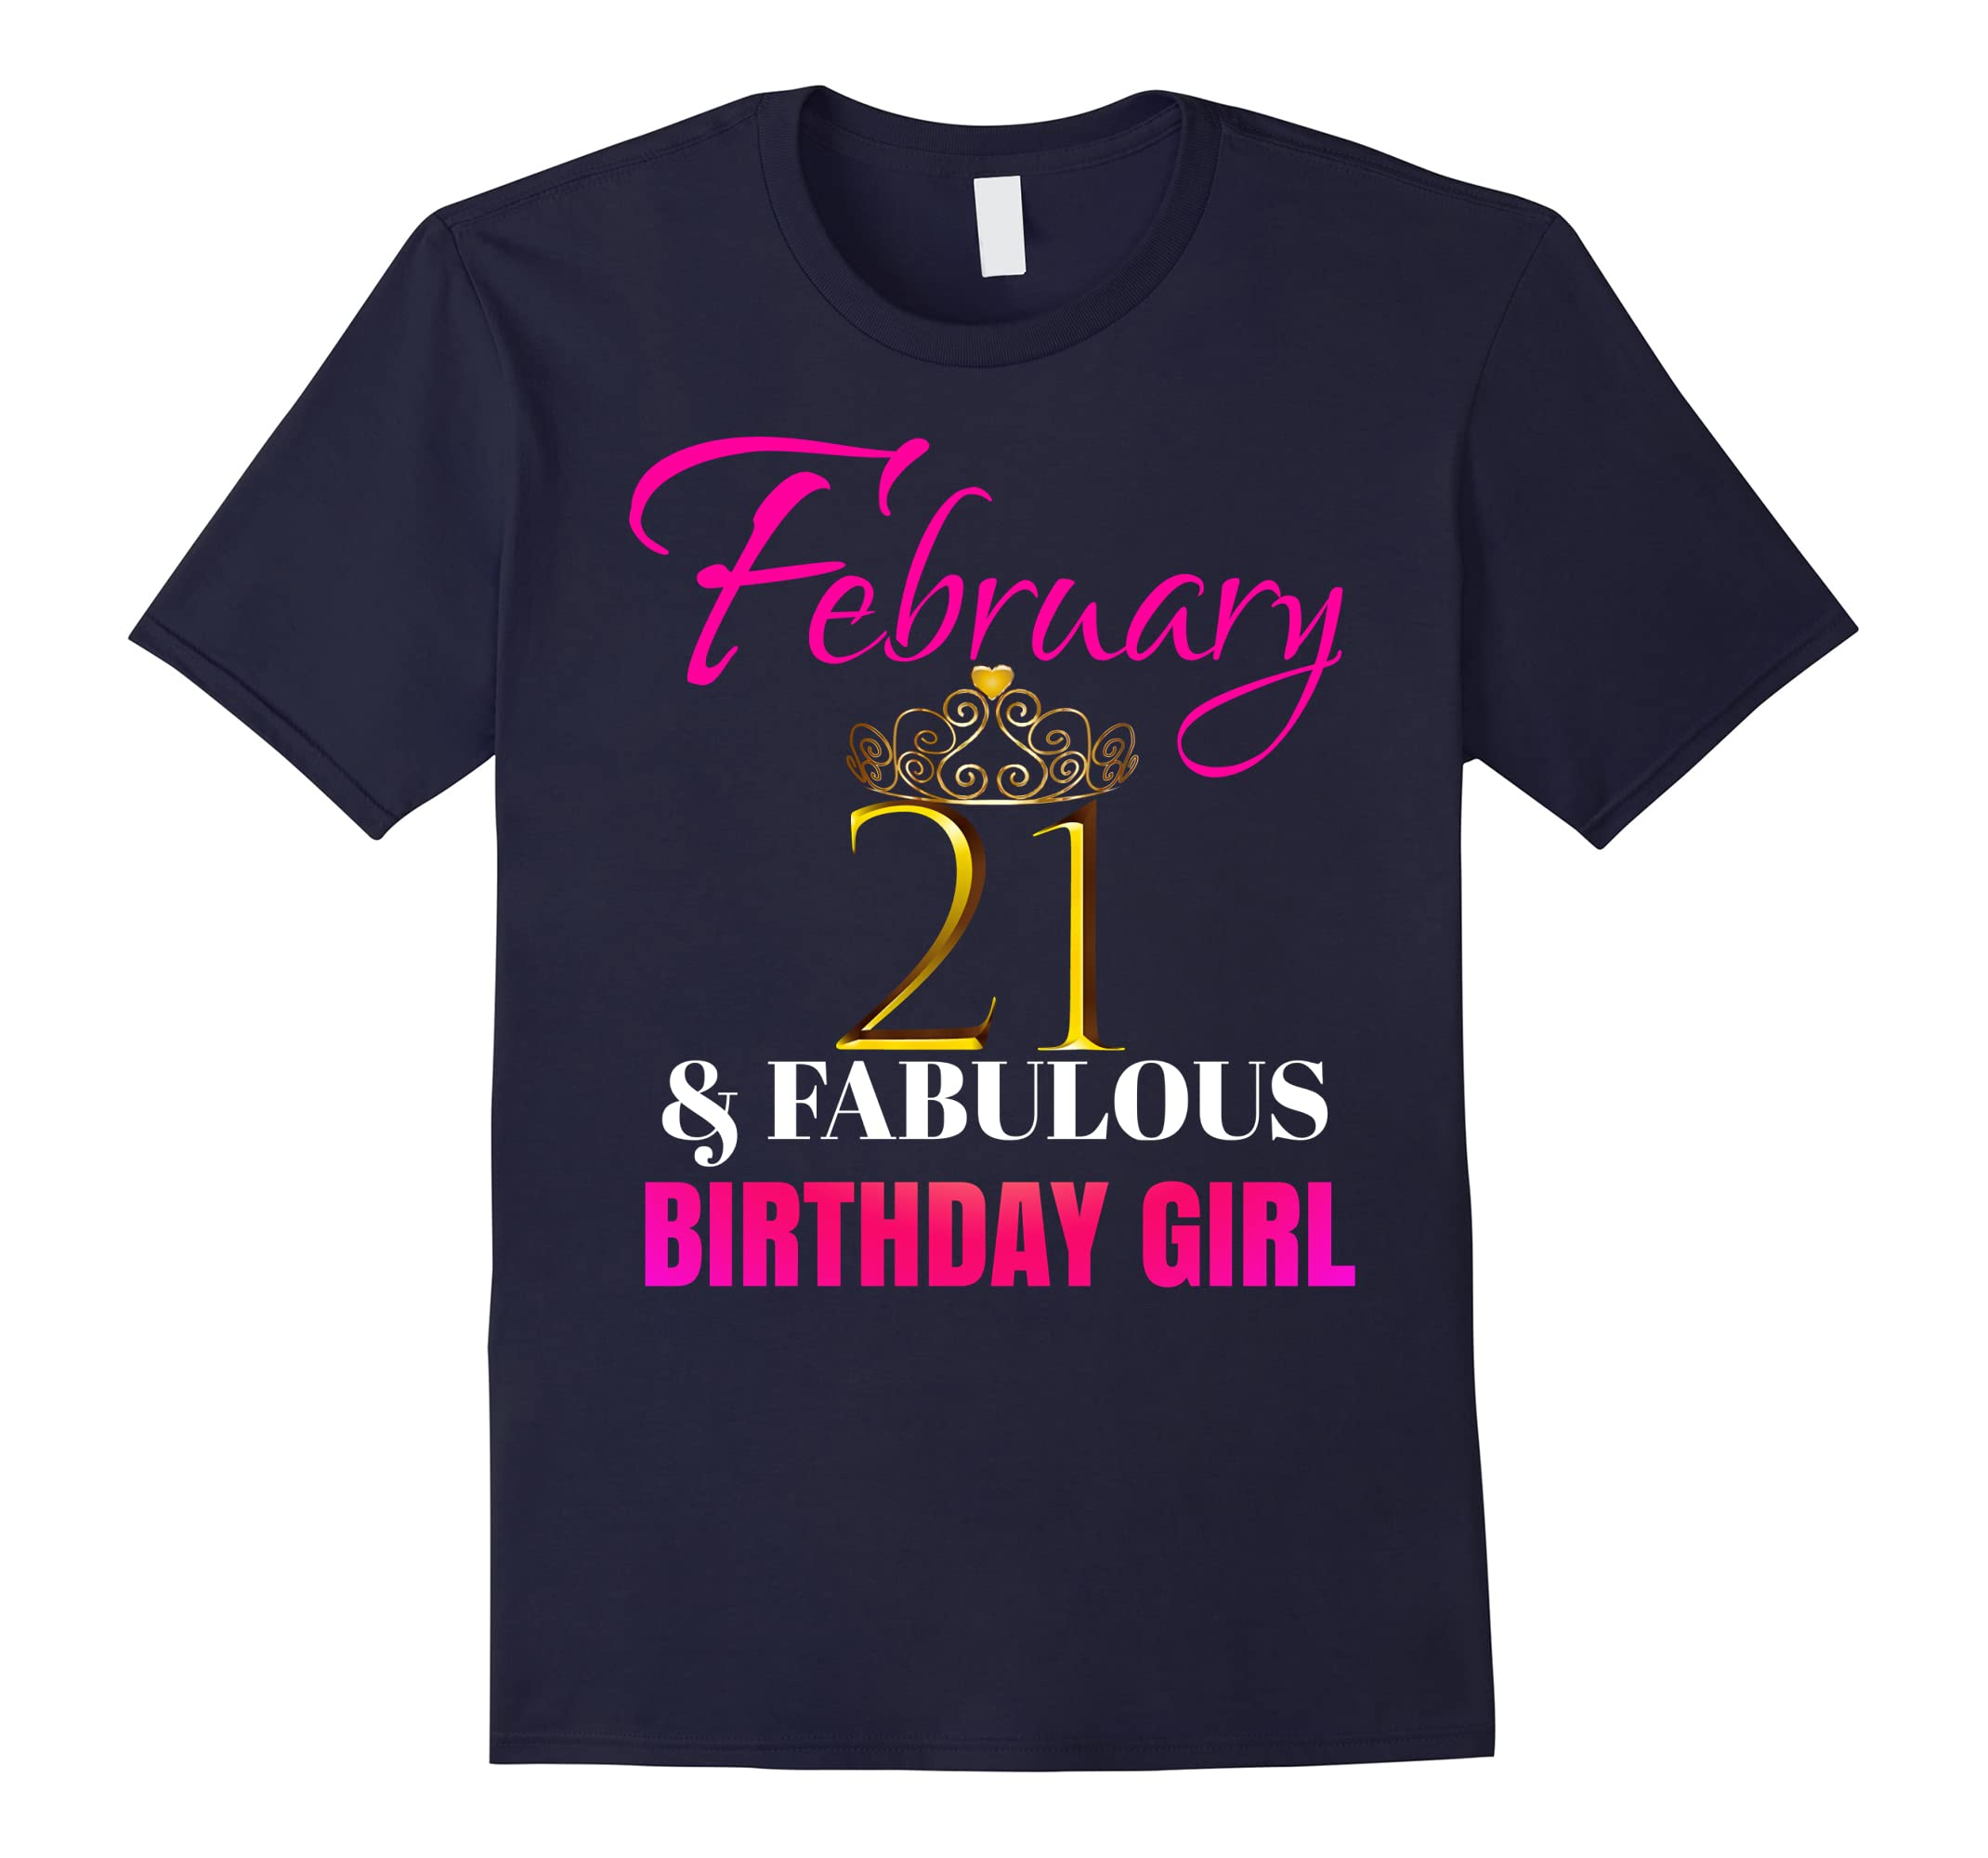 21 & FABULOUS February Birthday Girl Party Shirt Outfit-ah my shirt one gift